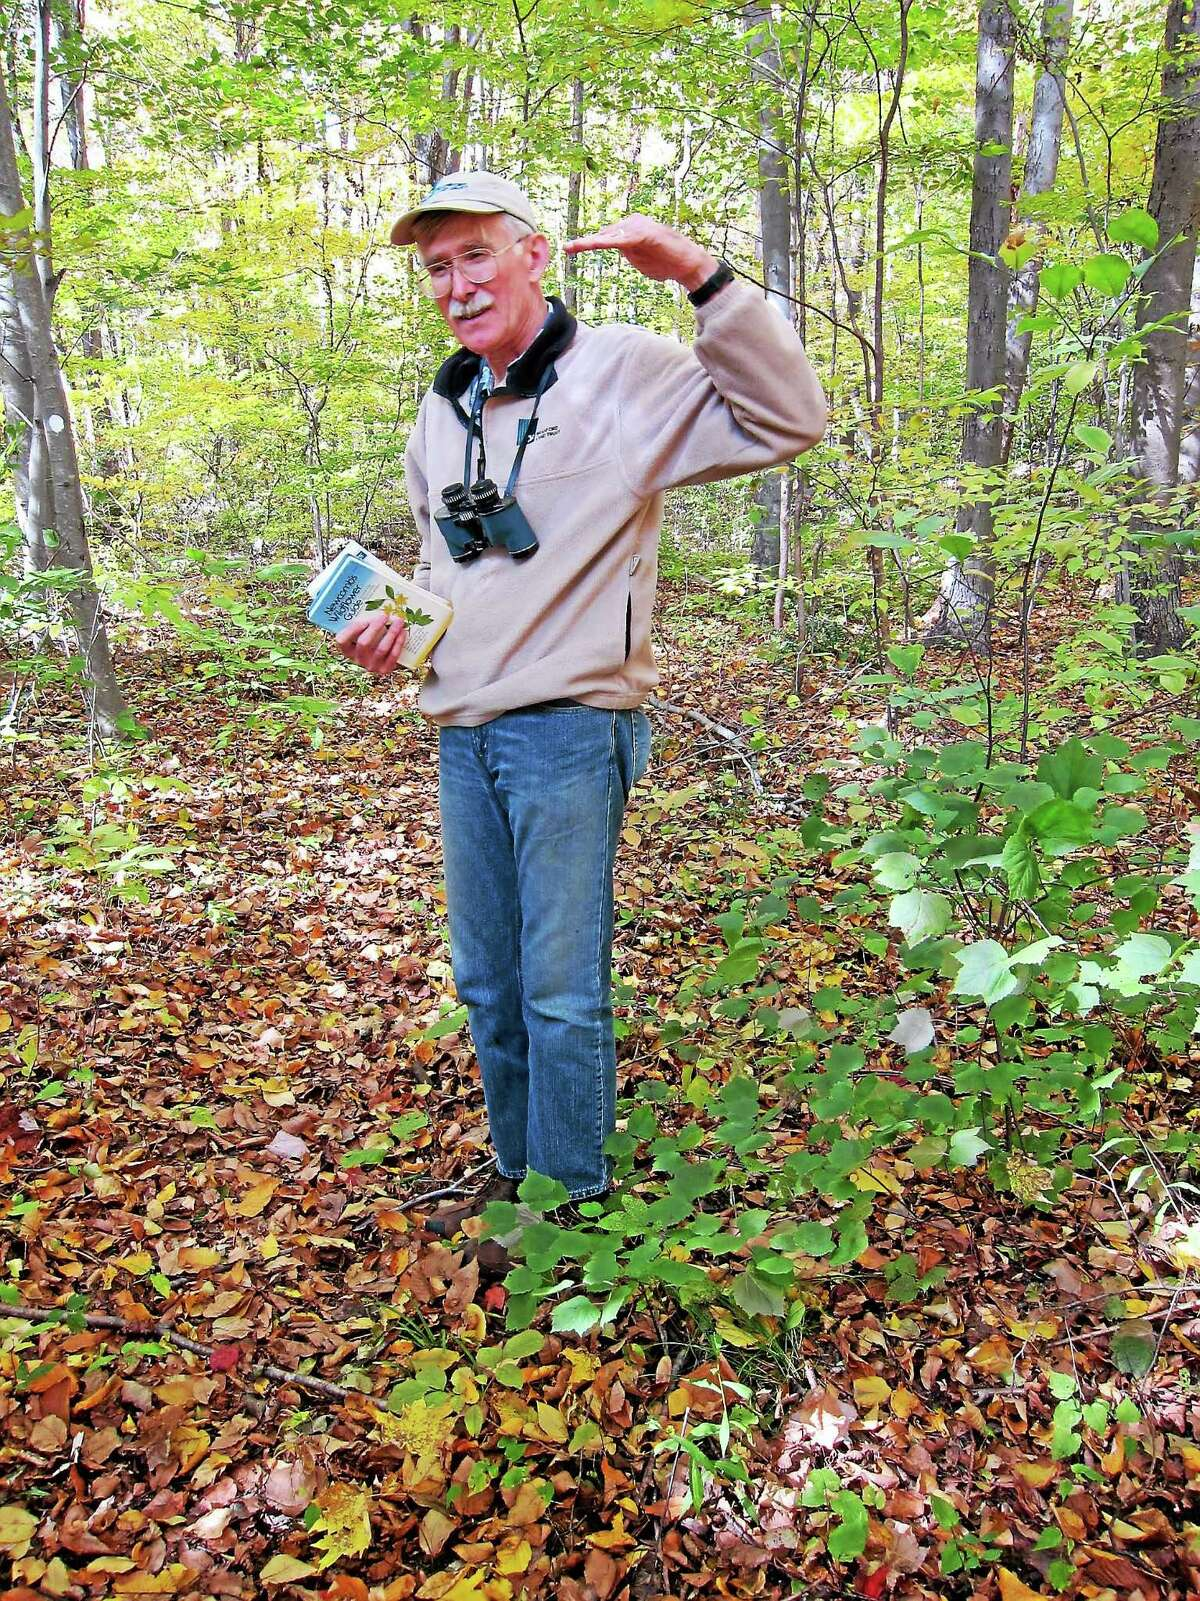 Bill Horne will lead the Branford Land Trust May Wildflower Walk Saturday.